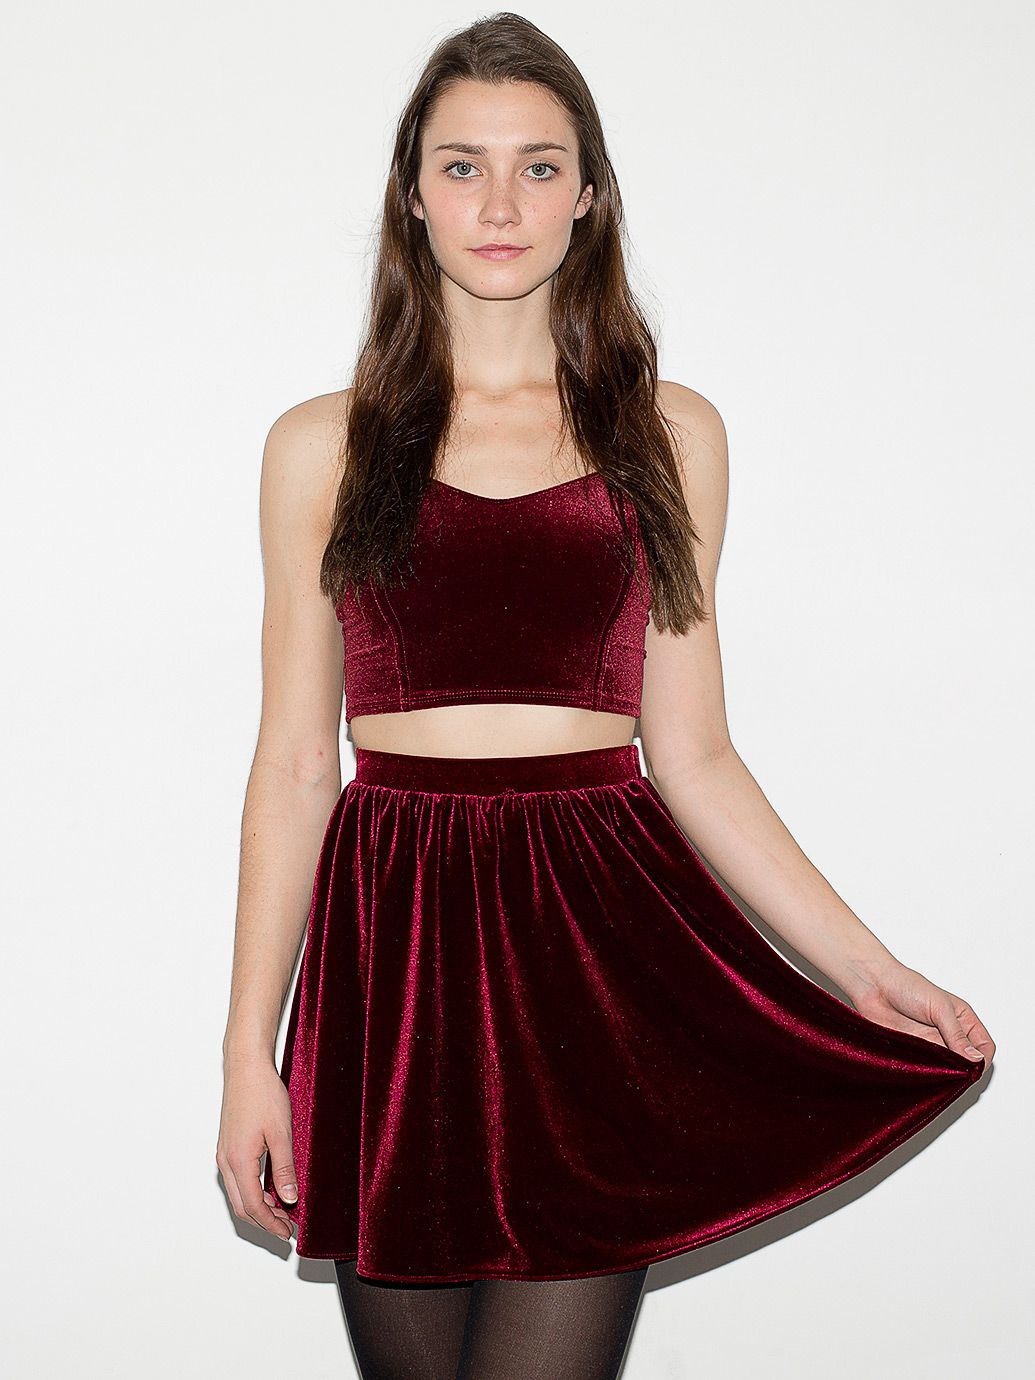 c5a438ed29 Unf I already own two skirts like that but now I MUST have this color.  Stretch Velvet Skirt | American Apparel Velvet Skater Dress ...